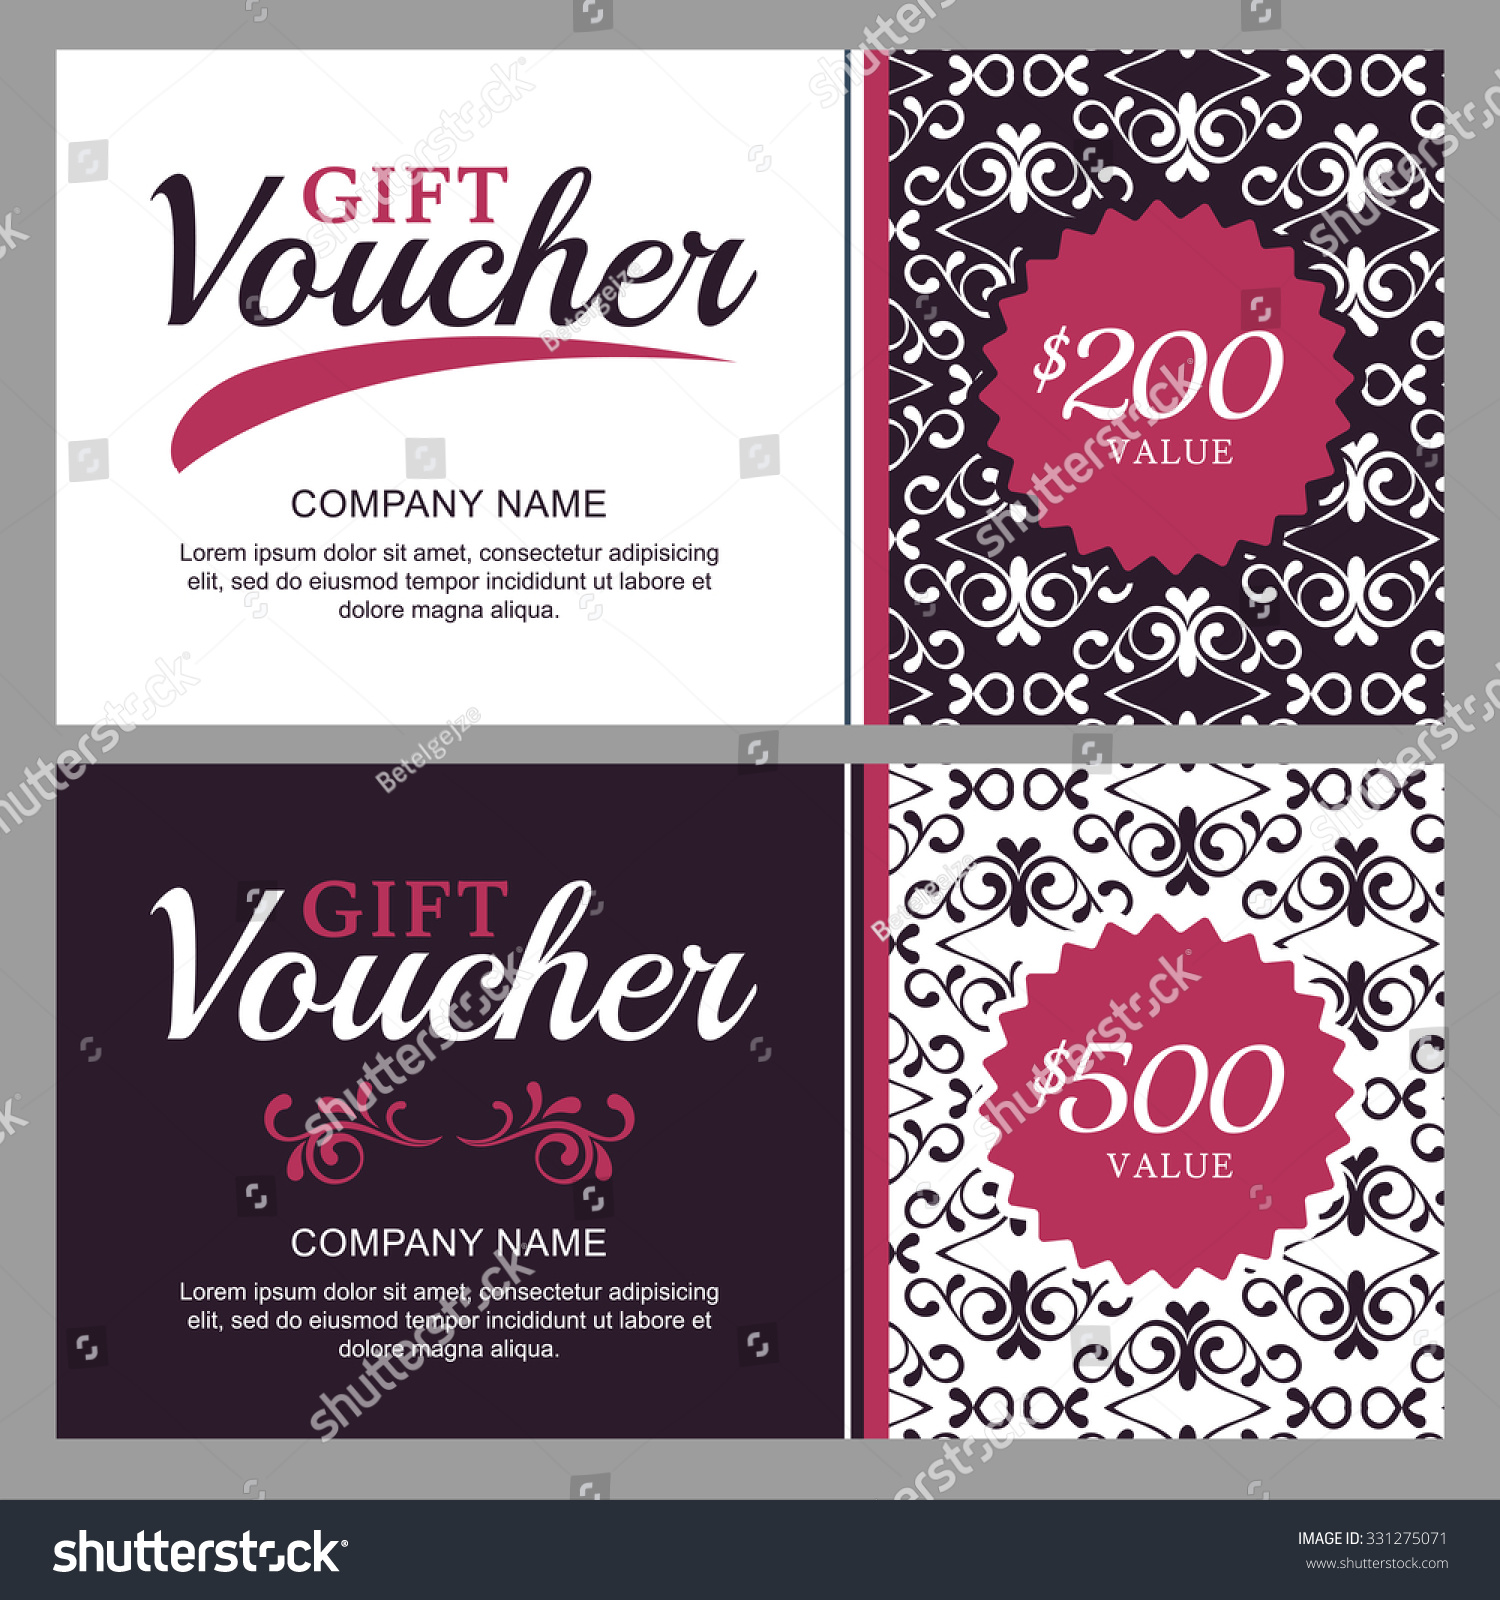 Royalty free vector gift voucher with black and 331275071 stock vector gift voucher with black and white ornament background vintage business card template floral design concept for boutique beauty salon spa magicingreecefo Images